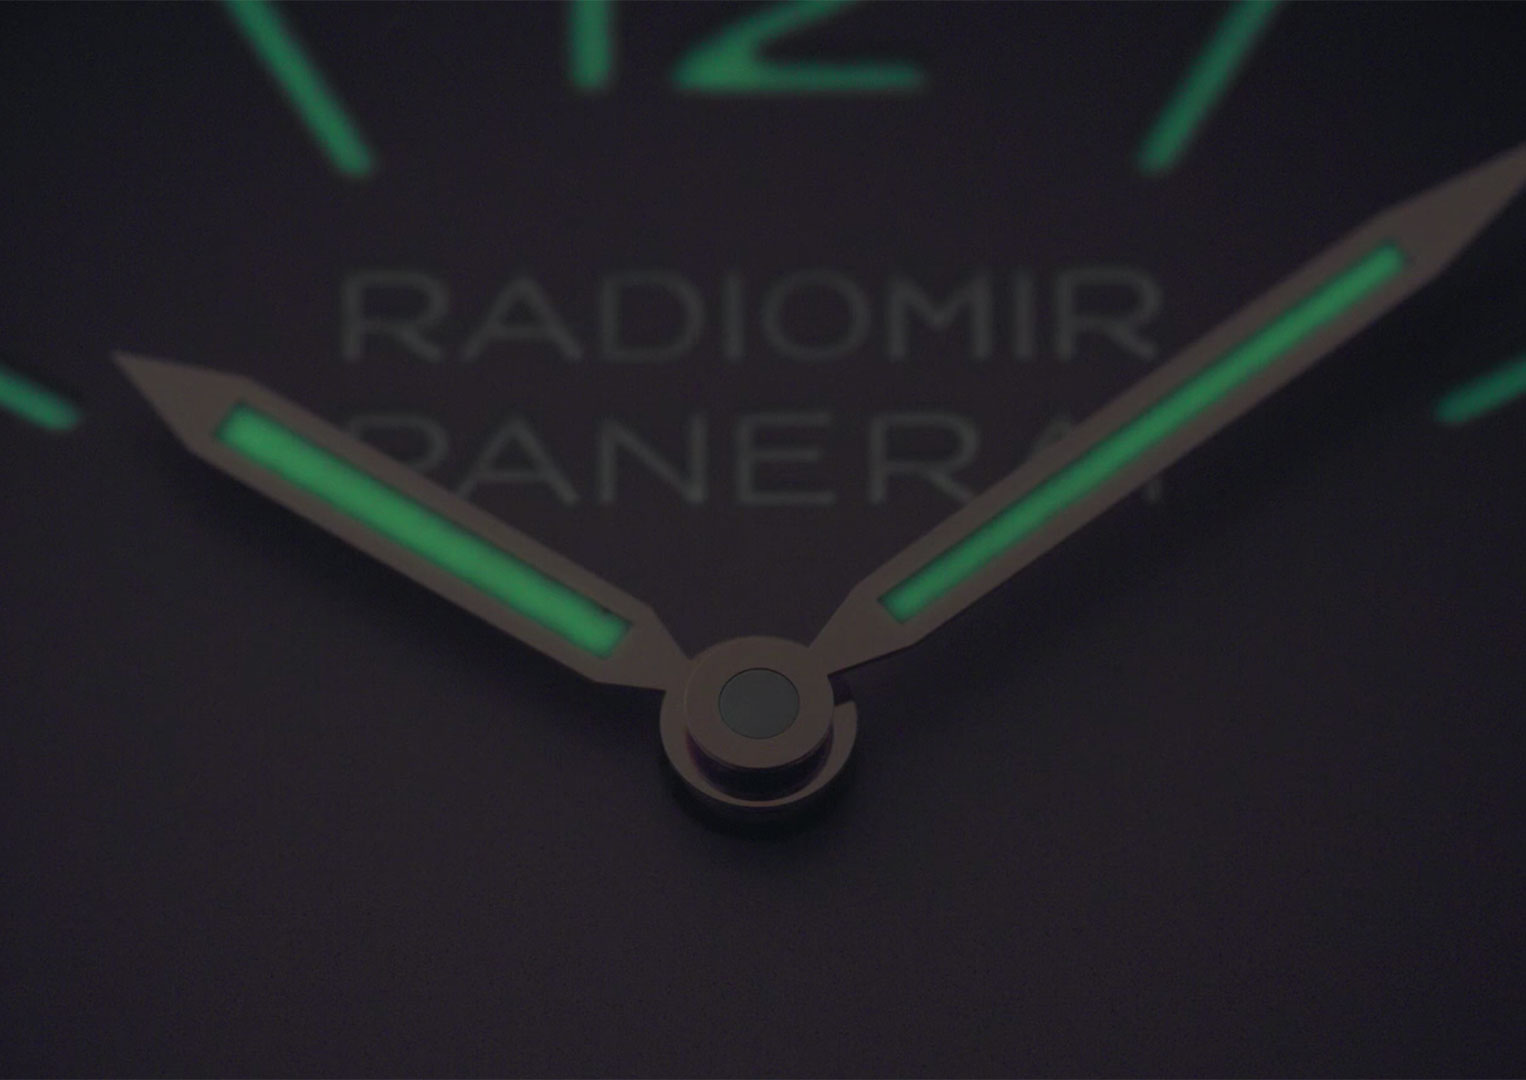 Panerai's first luminescent paint was radium-based and highly dangerous.